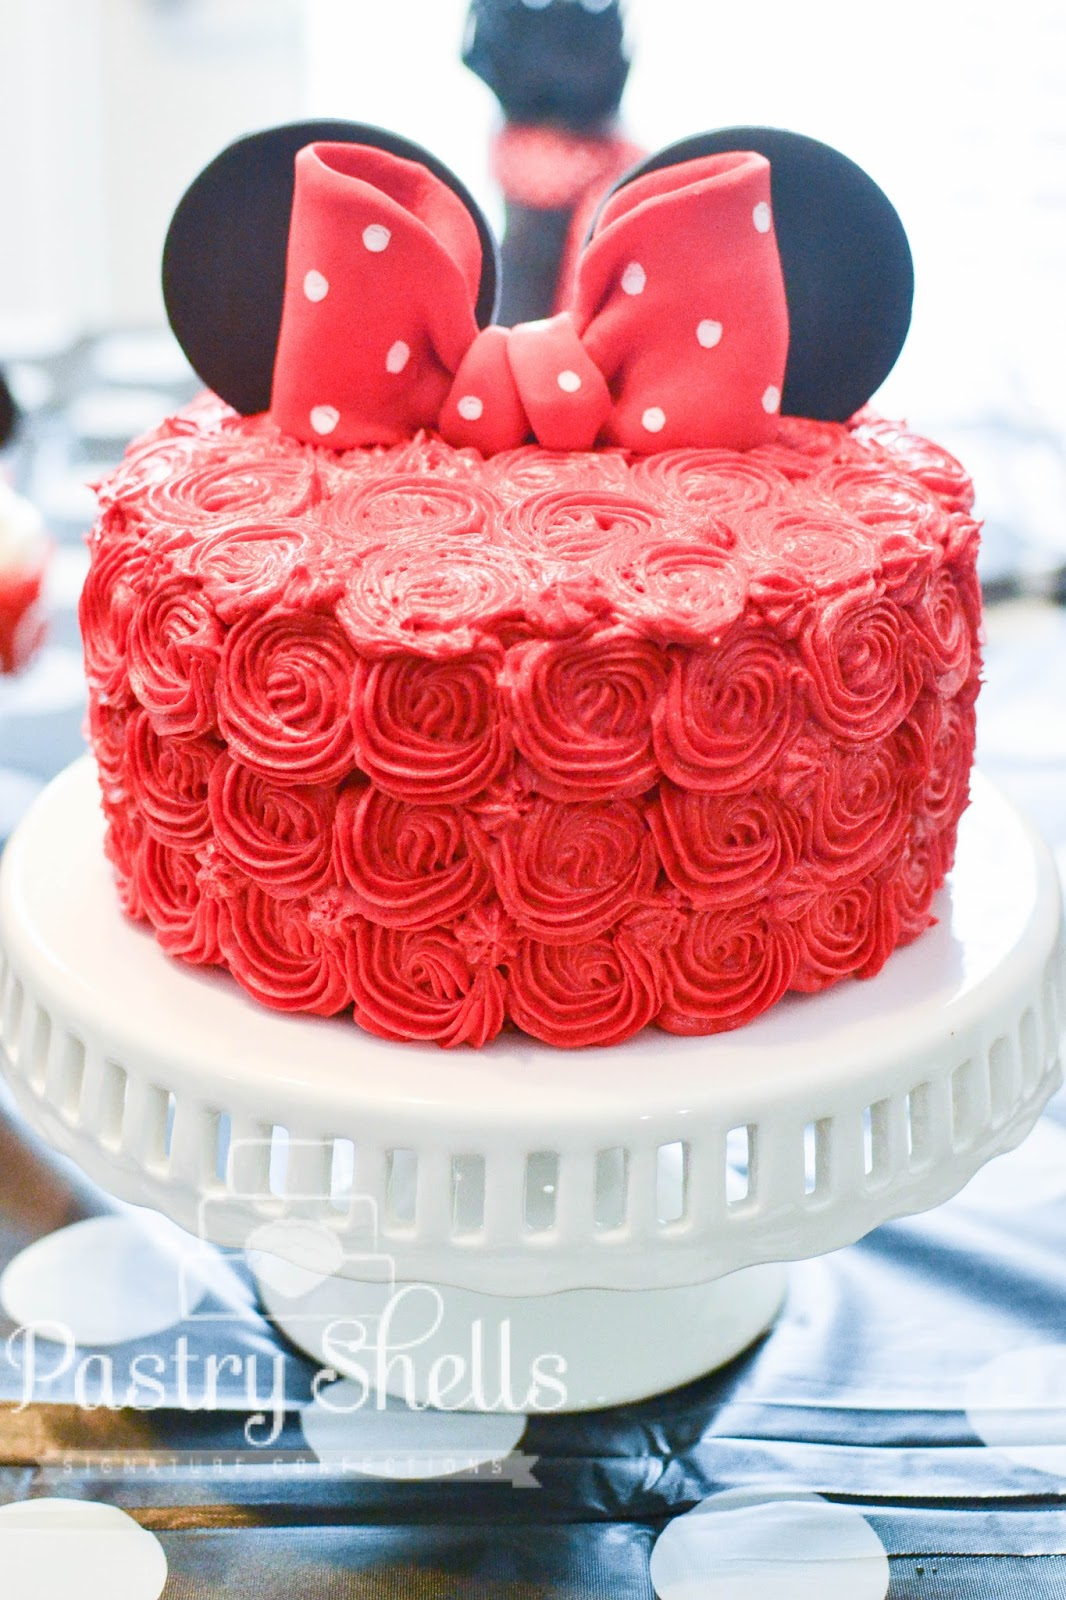 How to Make a Beautiful Minnie Mouse Rosette Cake Easily Pastry Shells